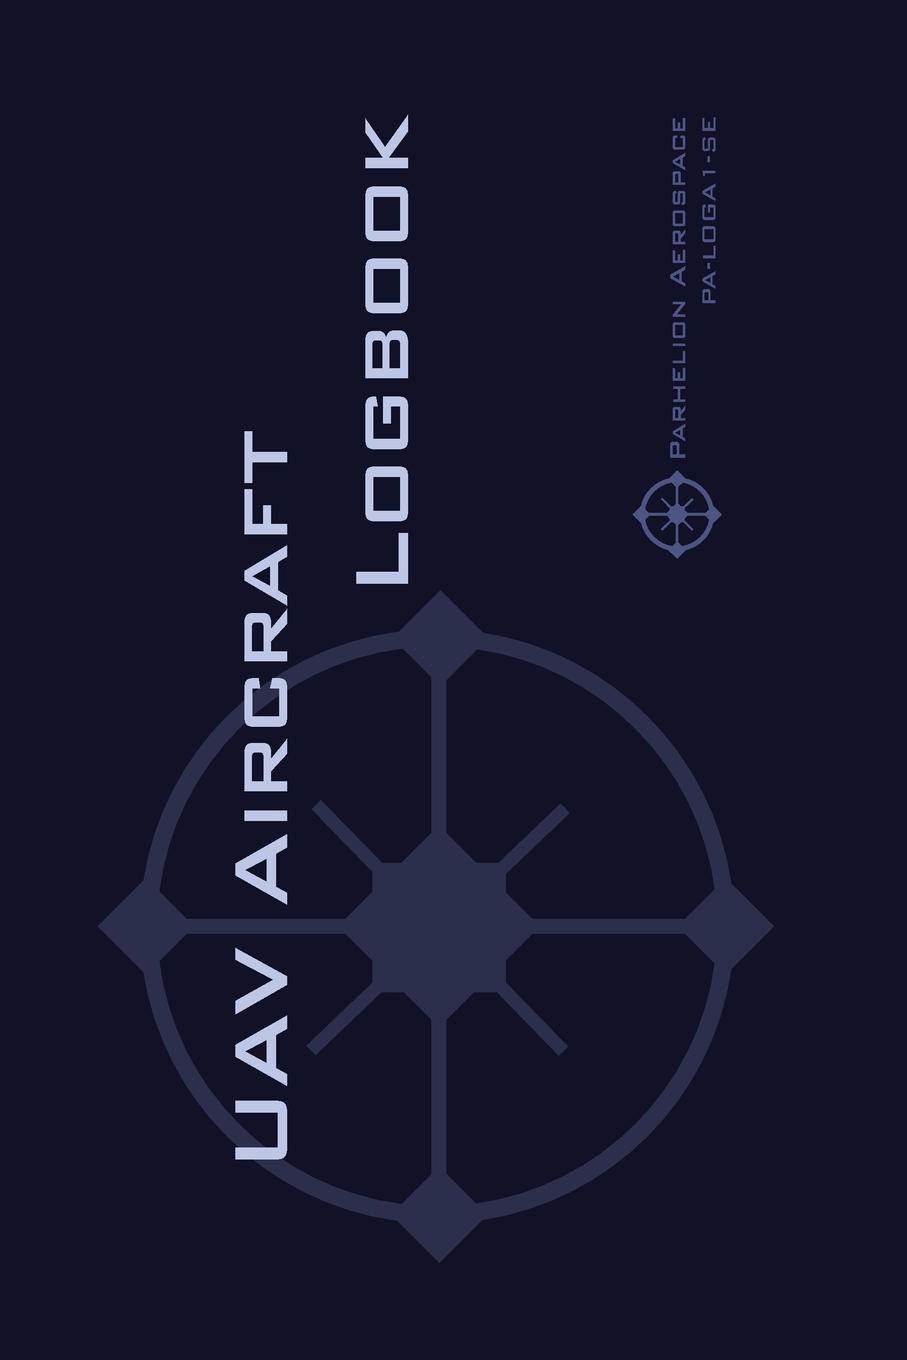 Michael L. Rampey UAV AIRCRAFT LOGBOOK. A Technical Logbook for Professional and Serious Hobbyist Drone Operators - Log Your Drone Use Like a Pro.